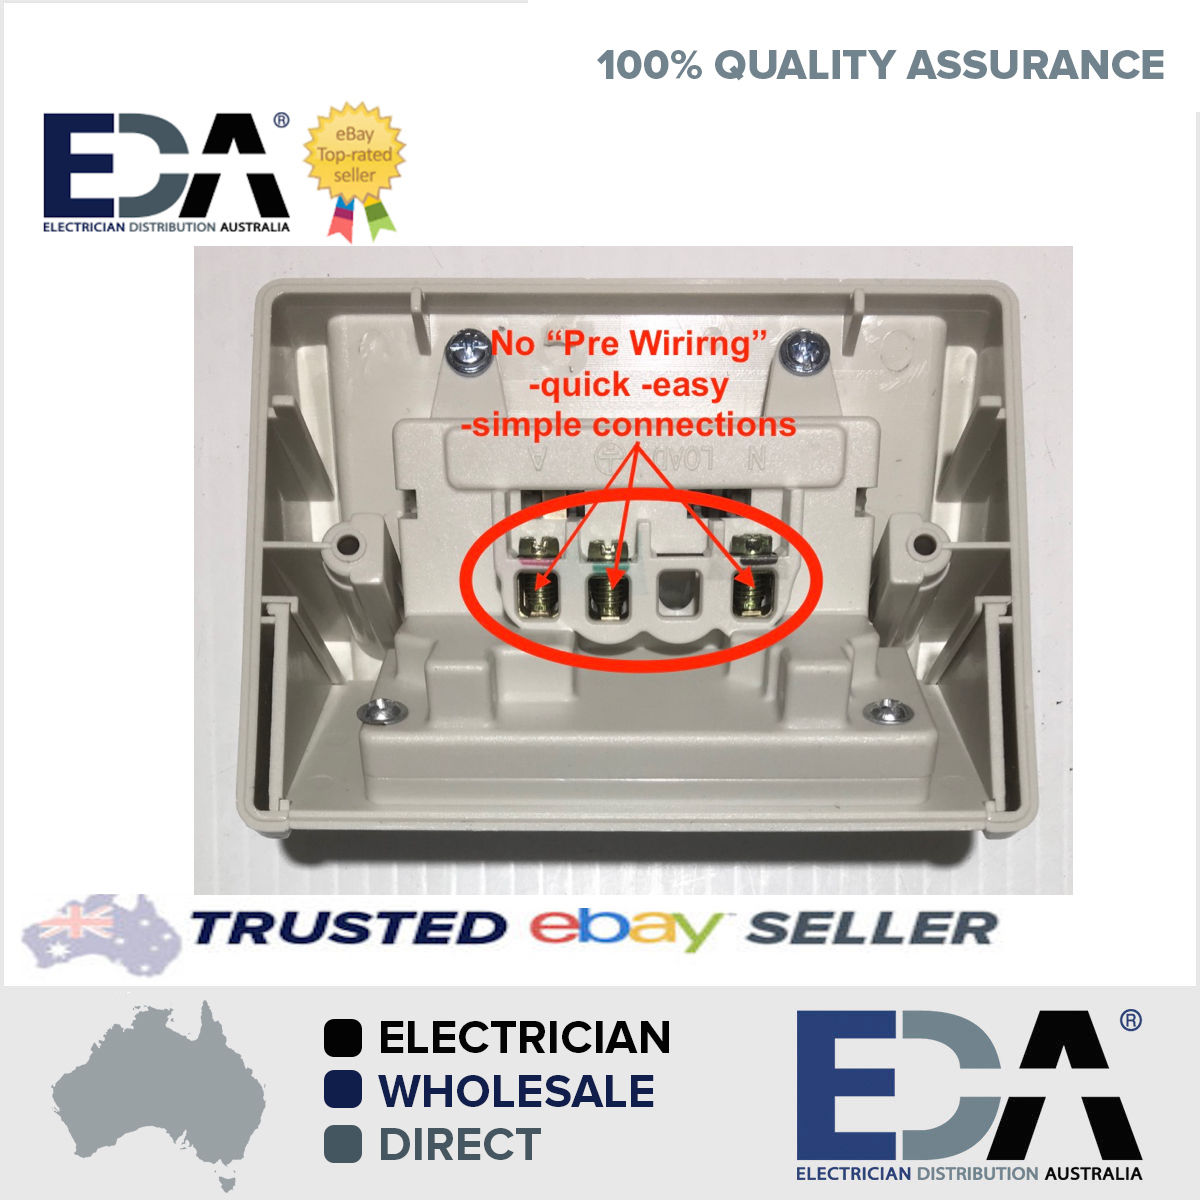 weatherproof dgpo no wiring double power point quick fit off easy rh edaonline com au wiring a clipsal power point wiring up a powerpoint